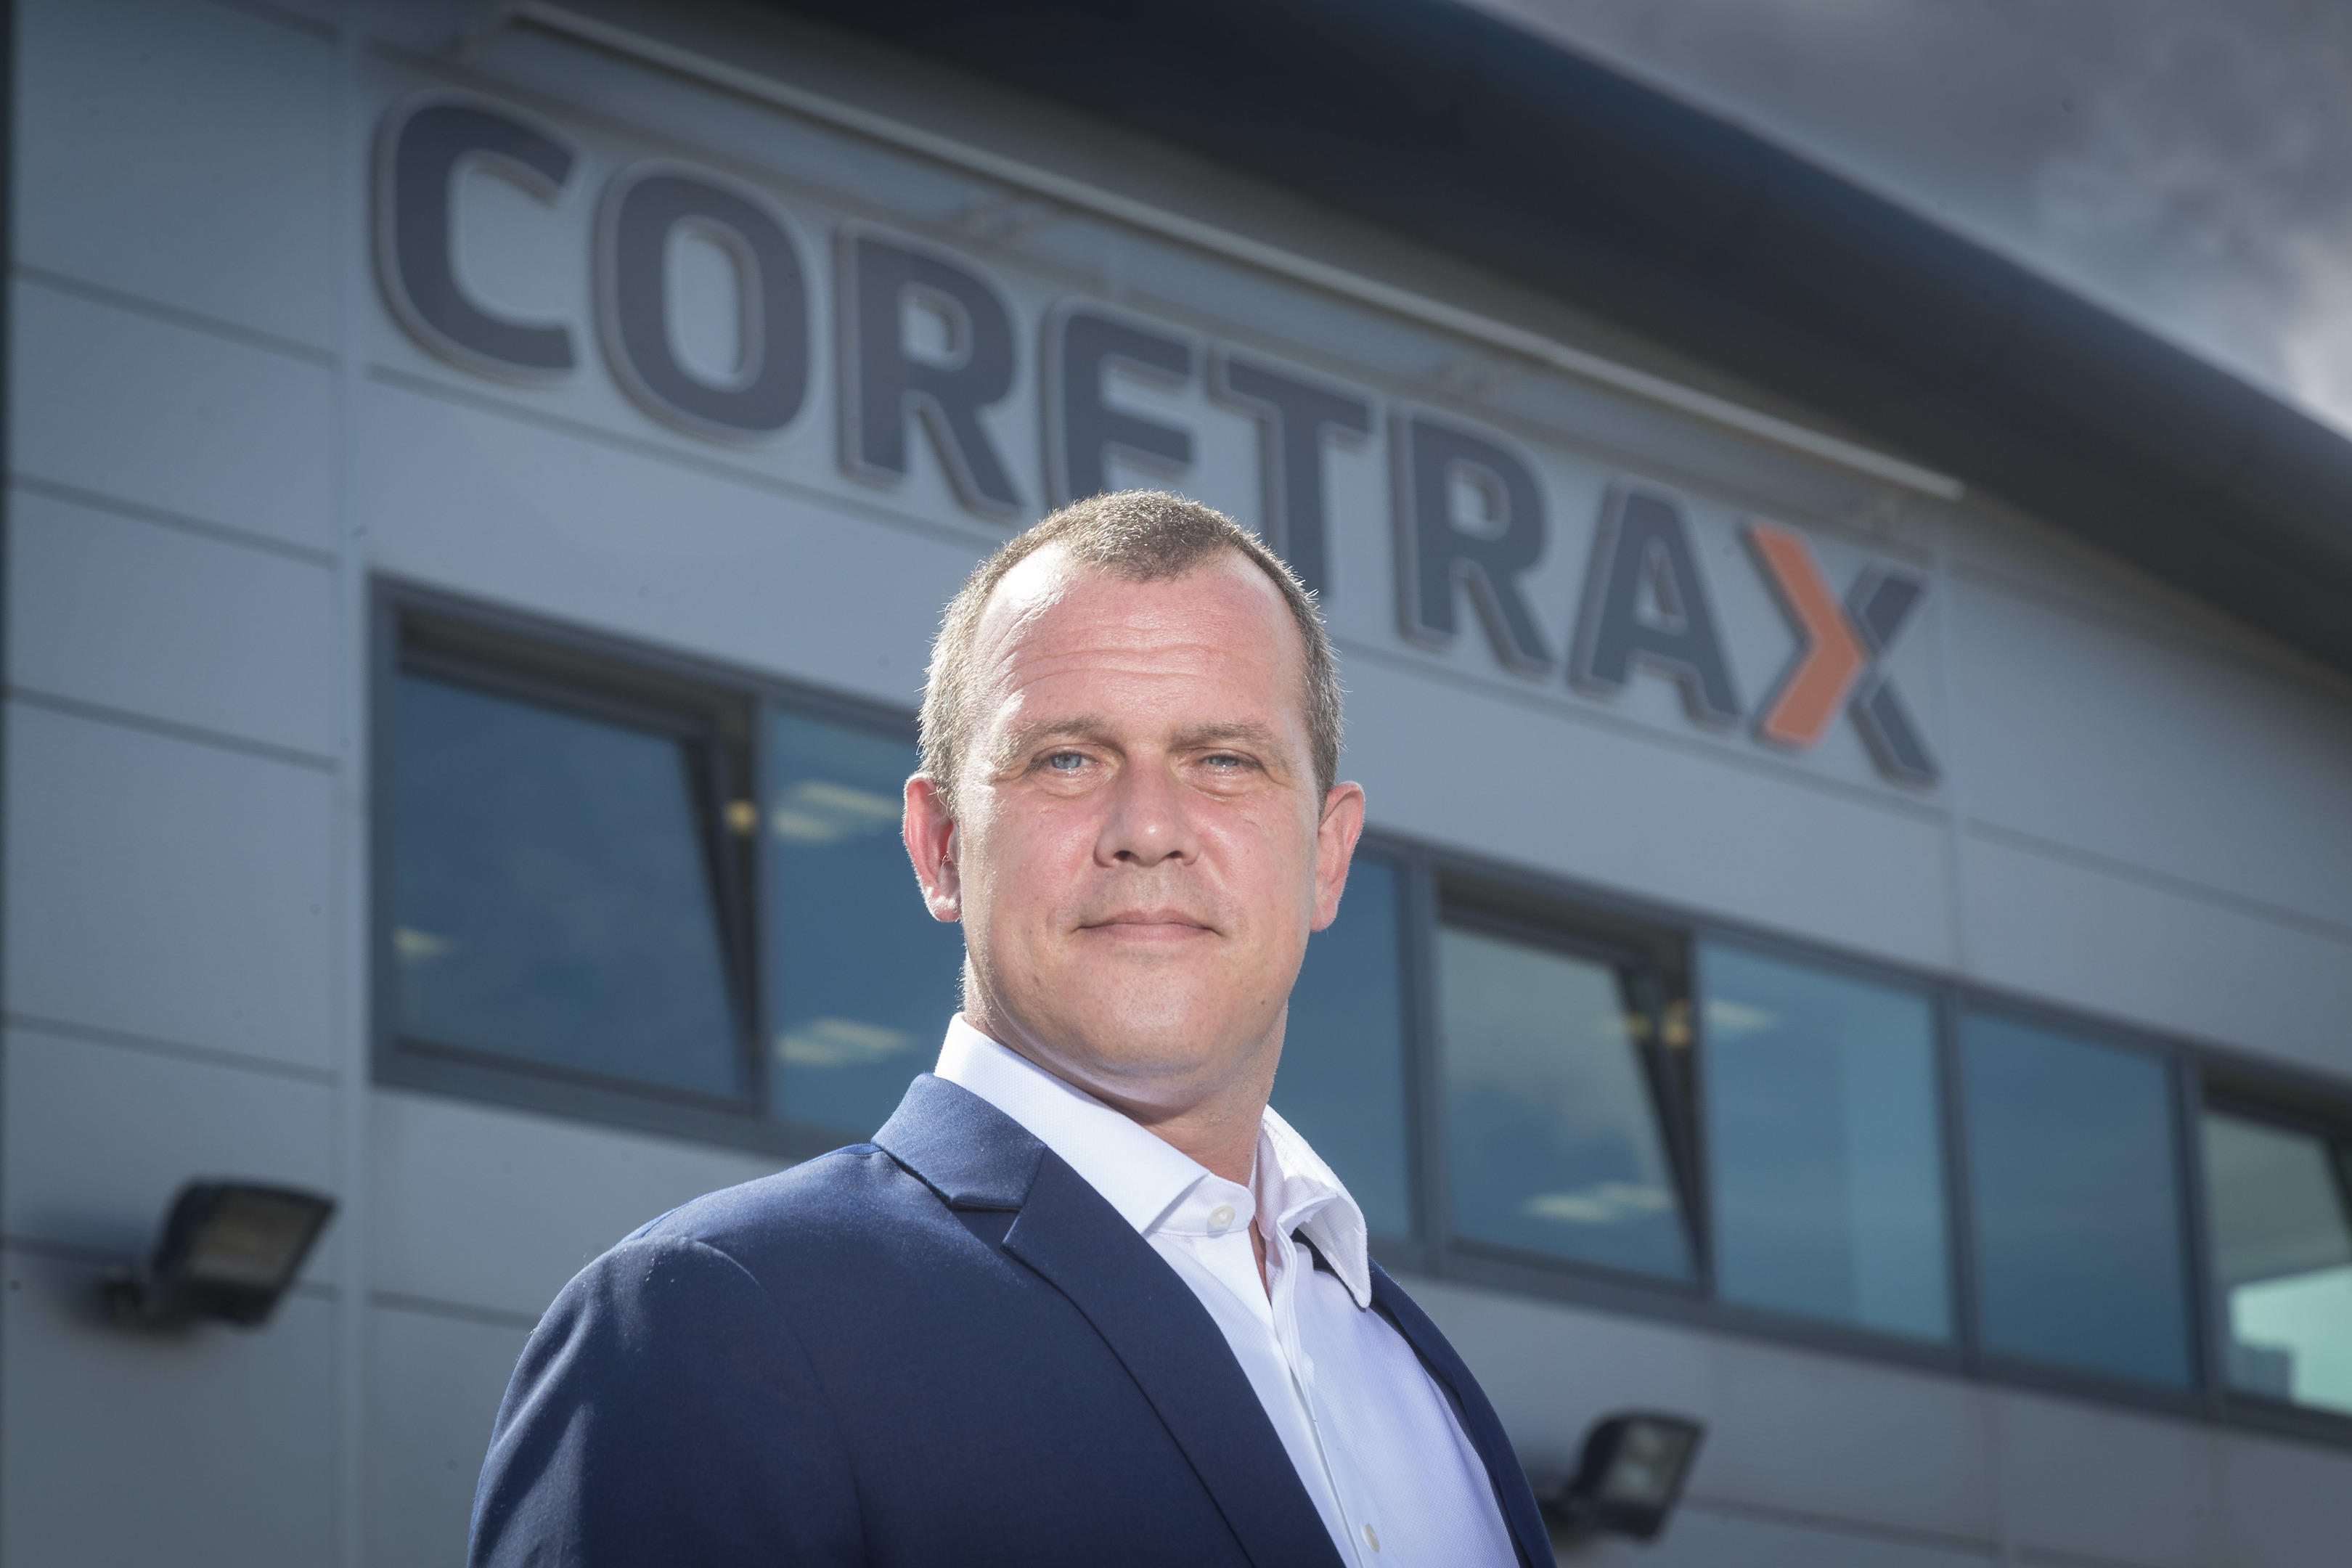 Coretrax boss Kenny Murray